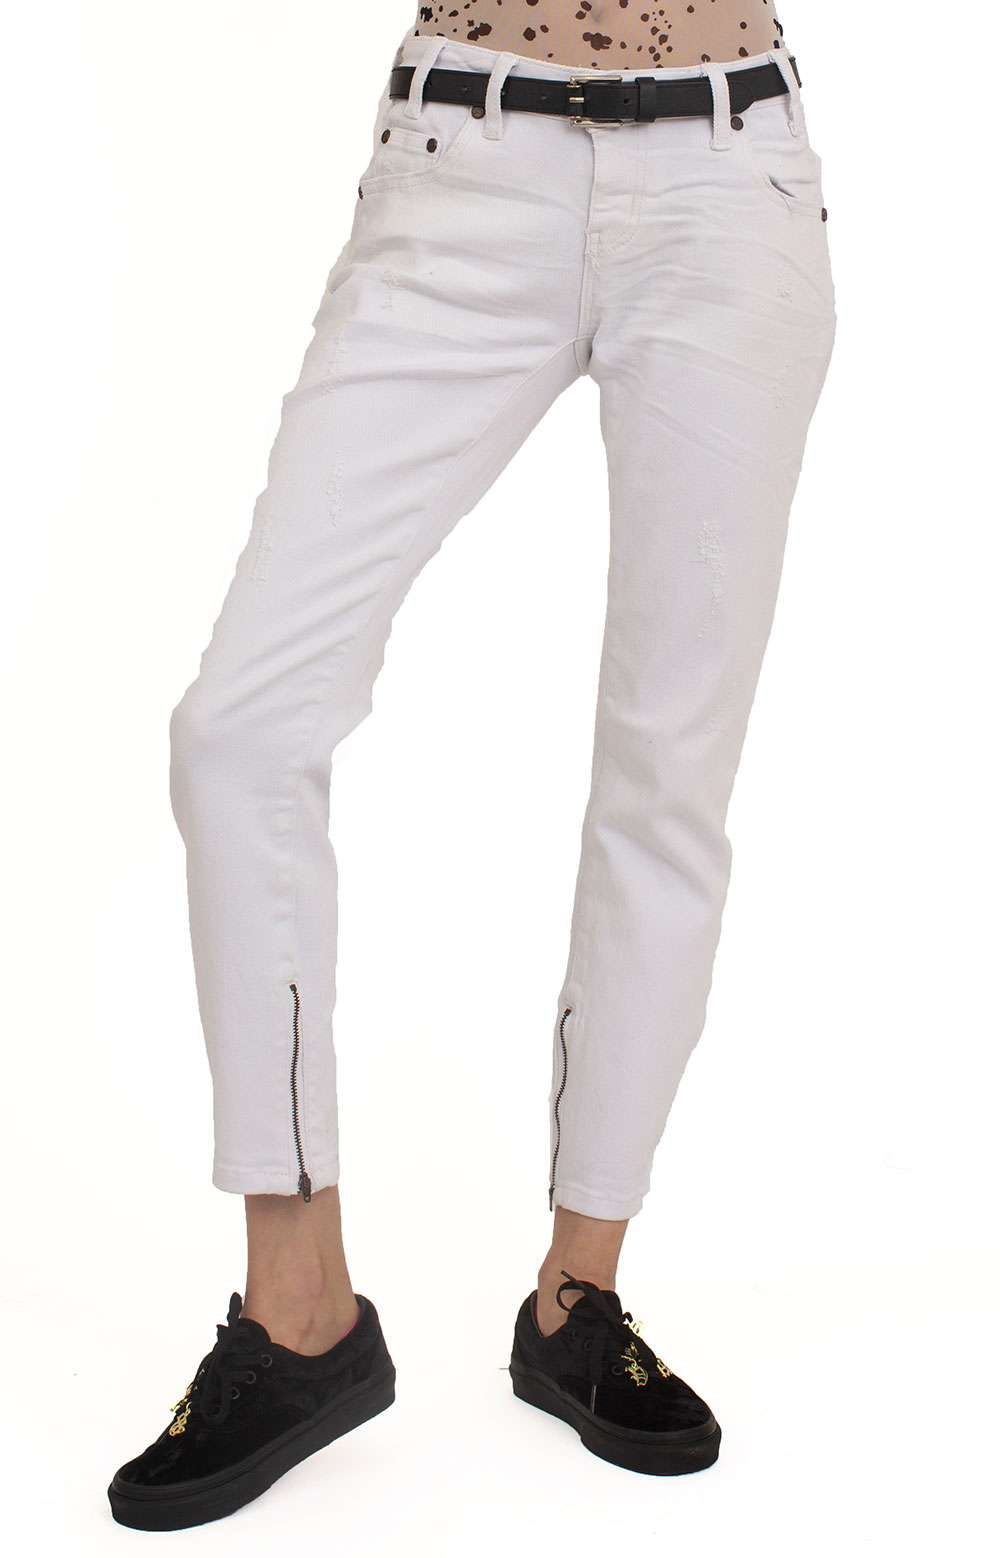 Freebirds II Jeans - Luxe White